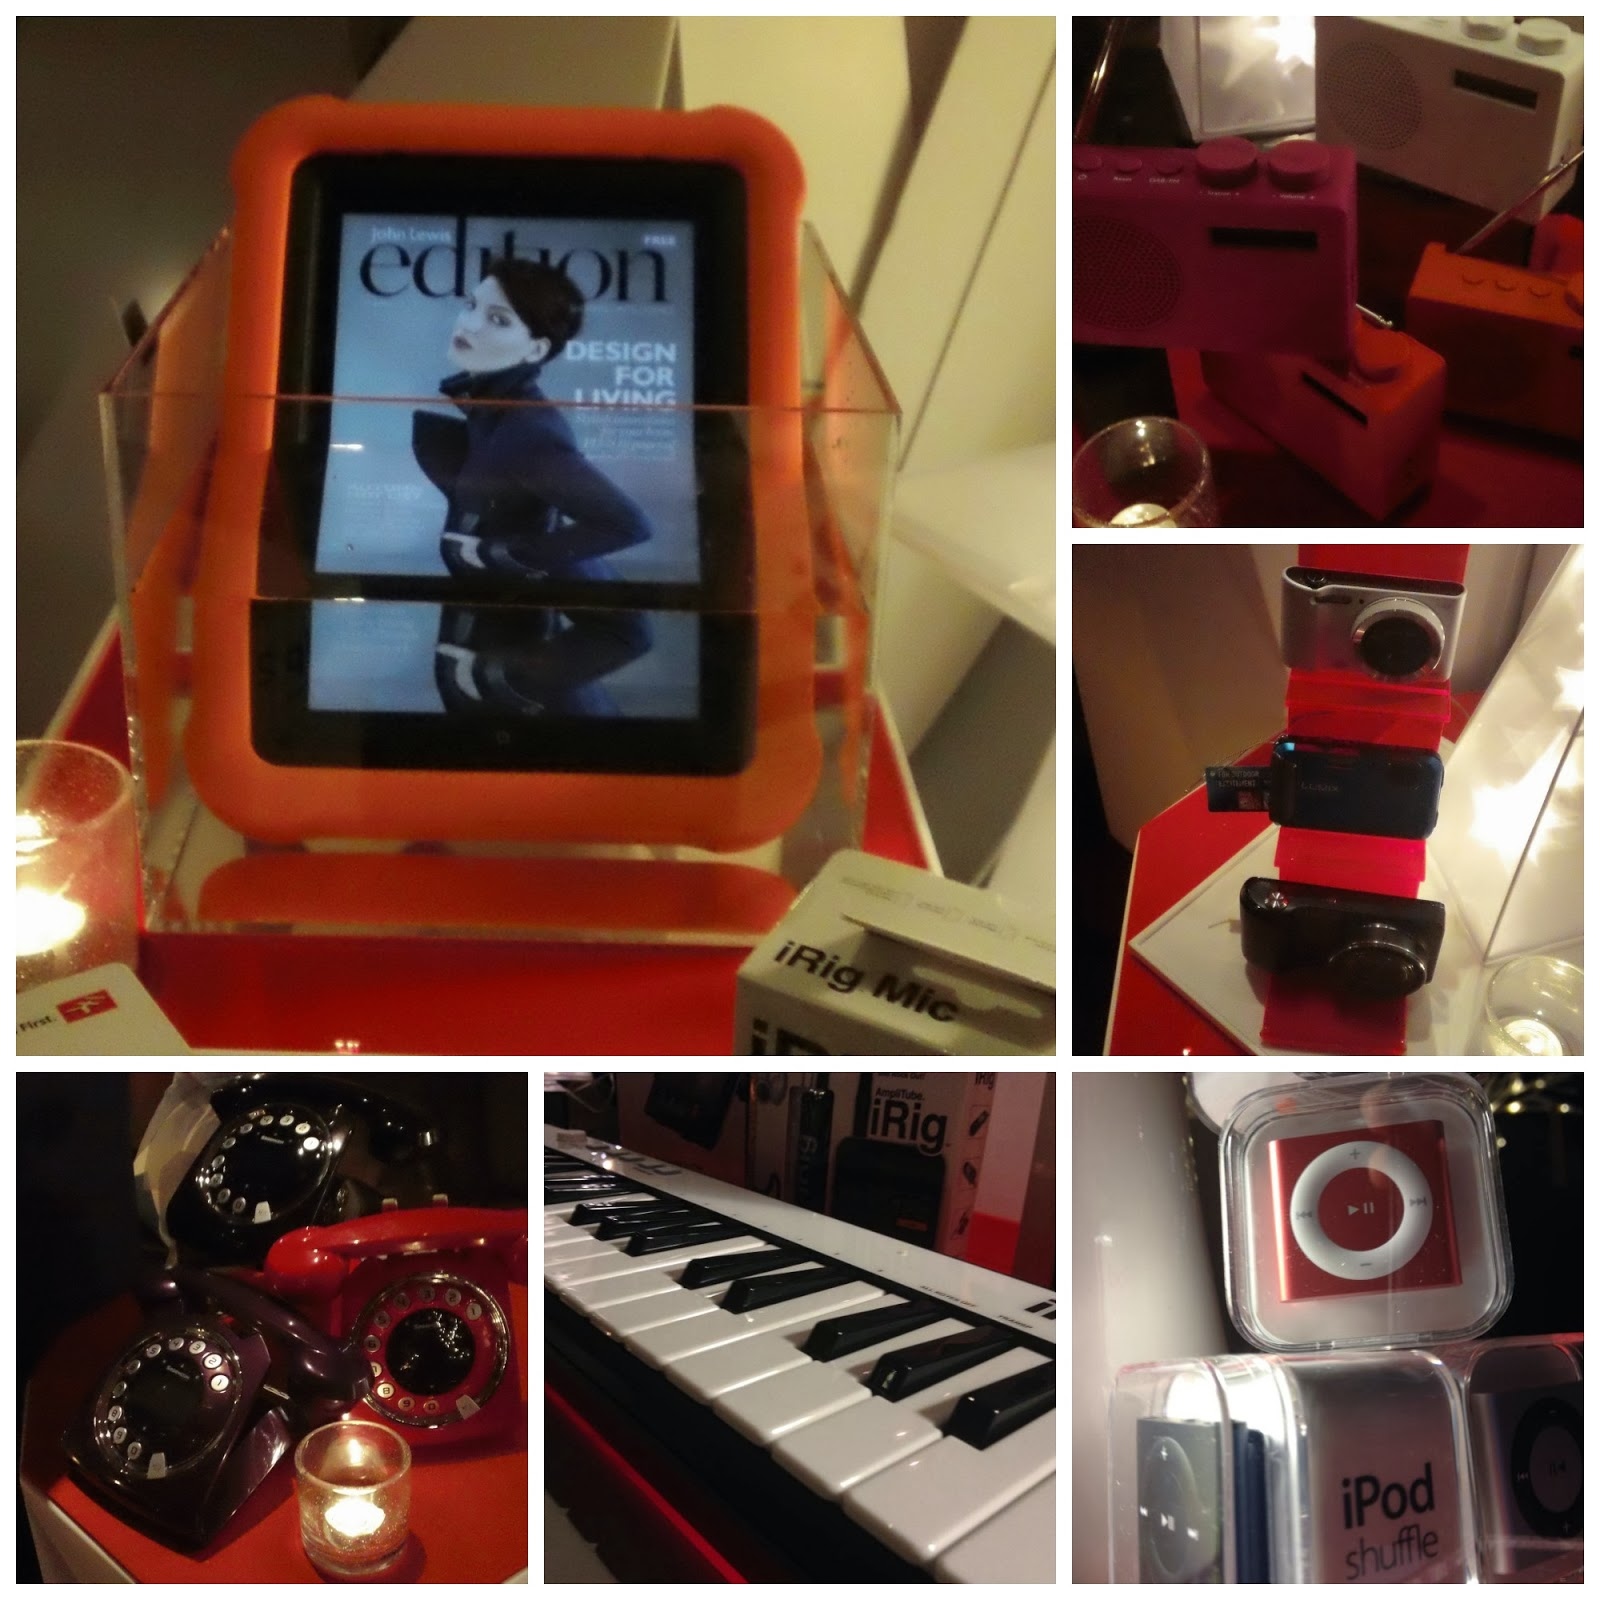 Waterproof Apple iPad Case, John Lewis Press Event, John Lewis Christmas, Kuku Club, Park Plaza Hotel Cardiff